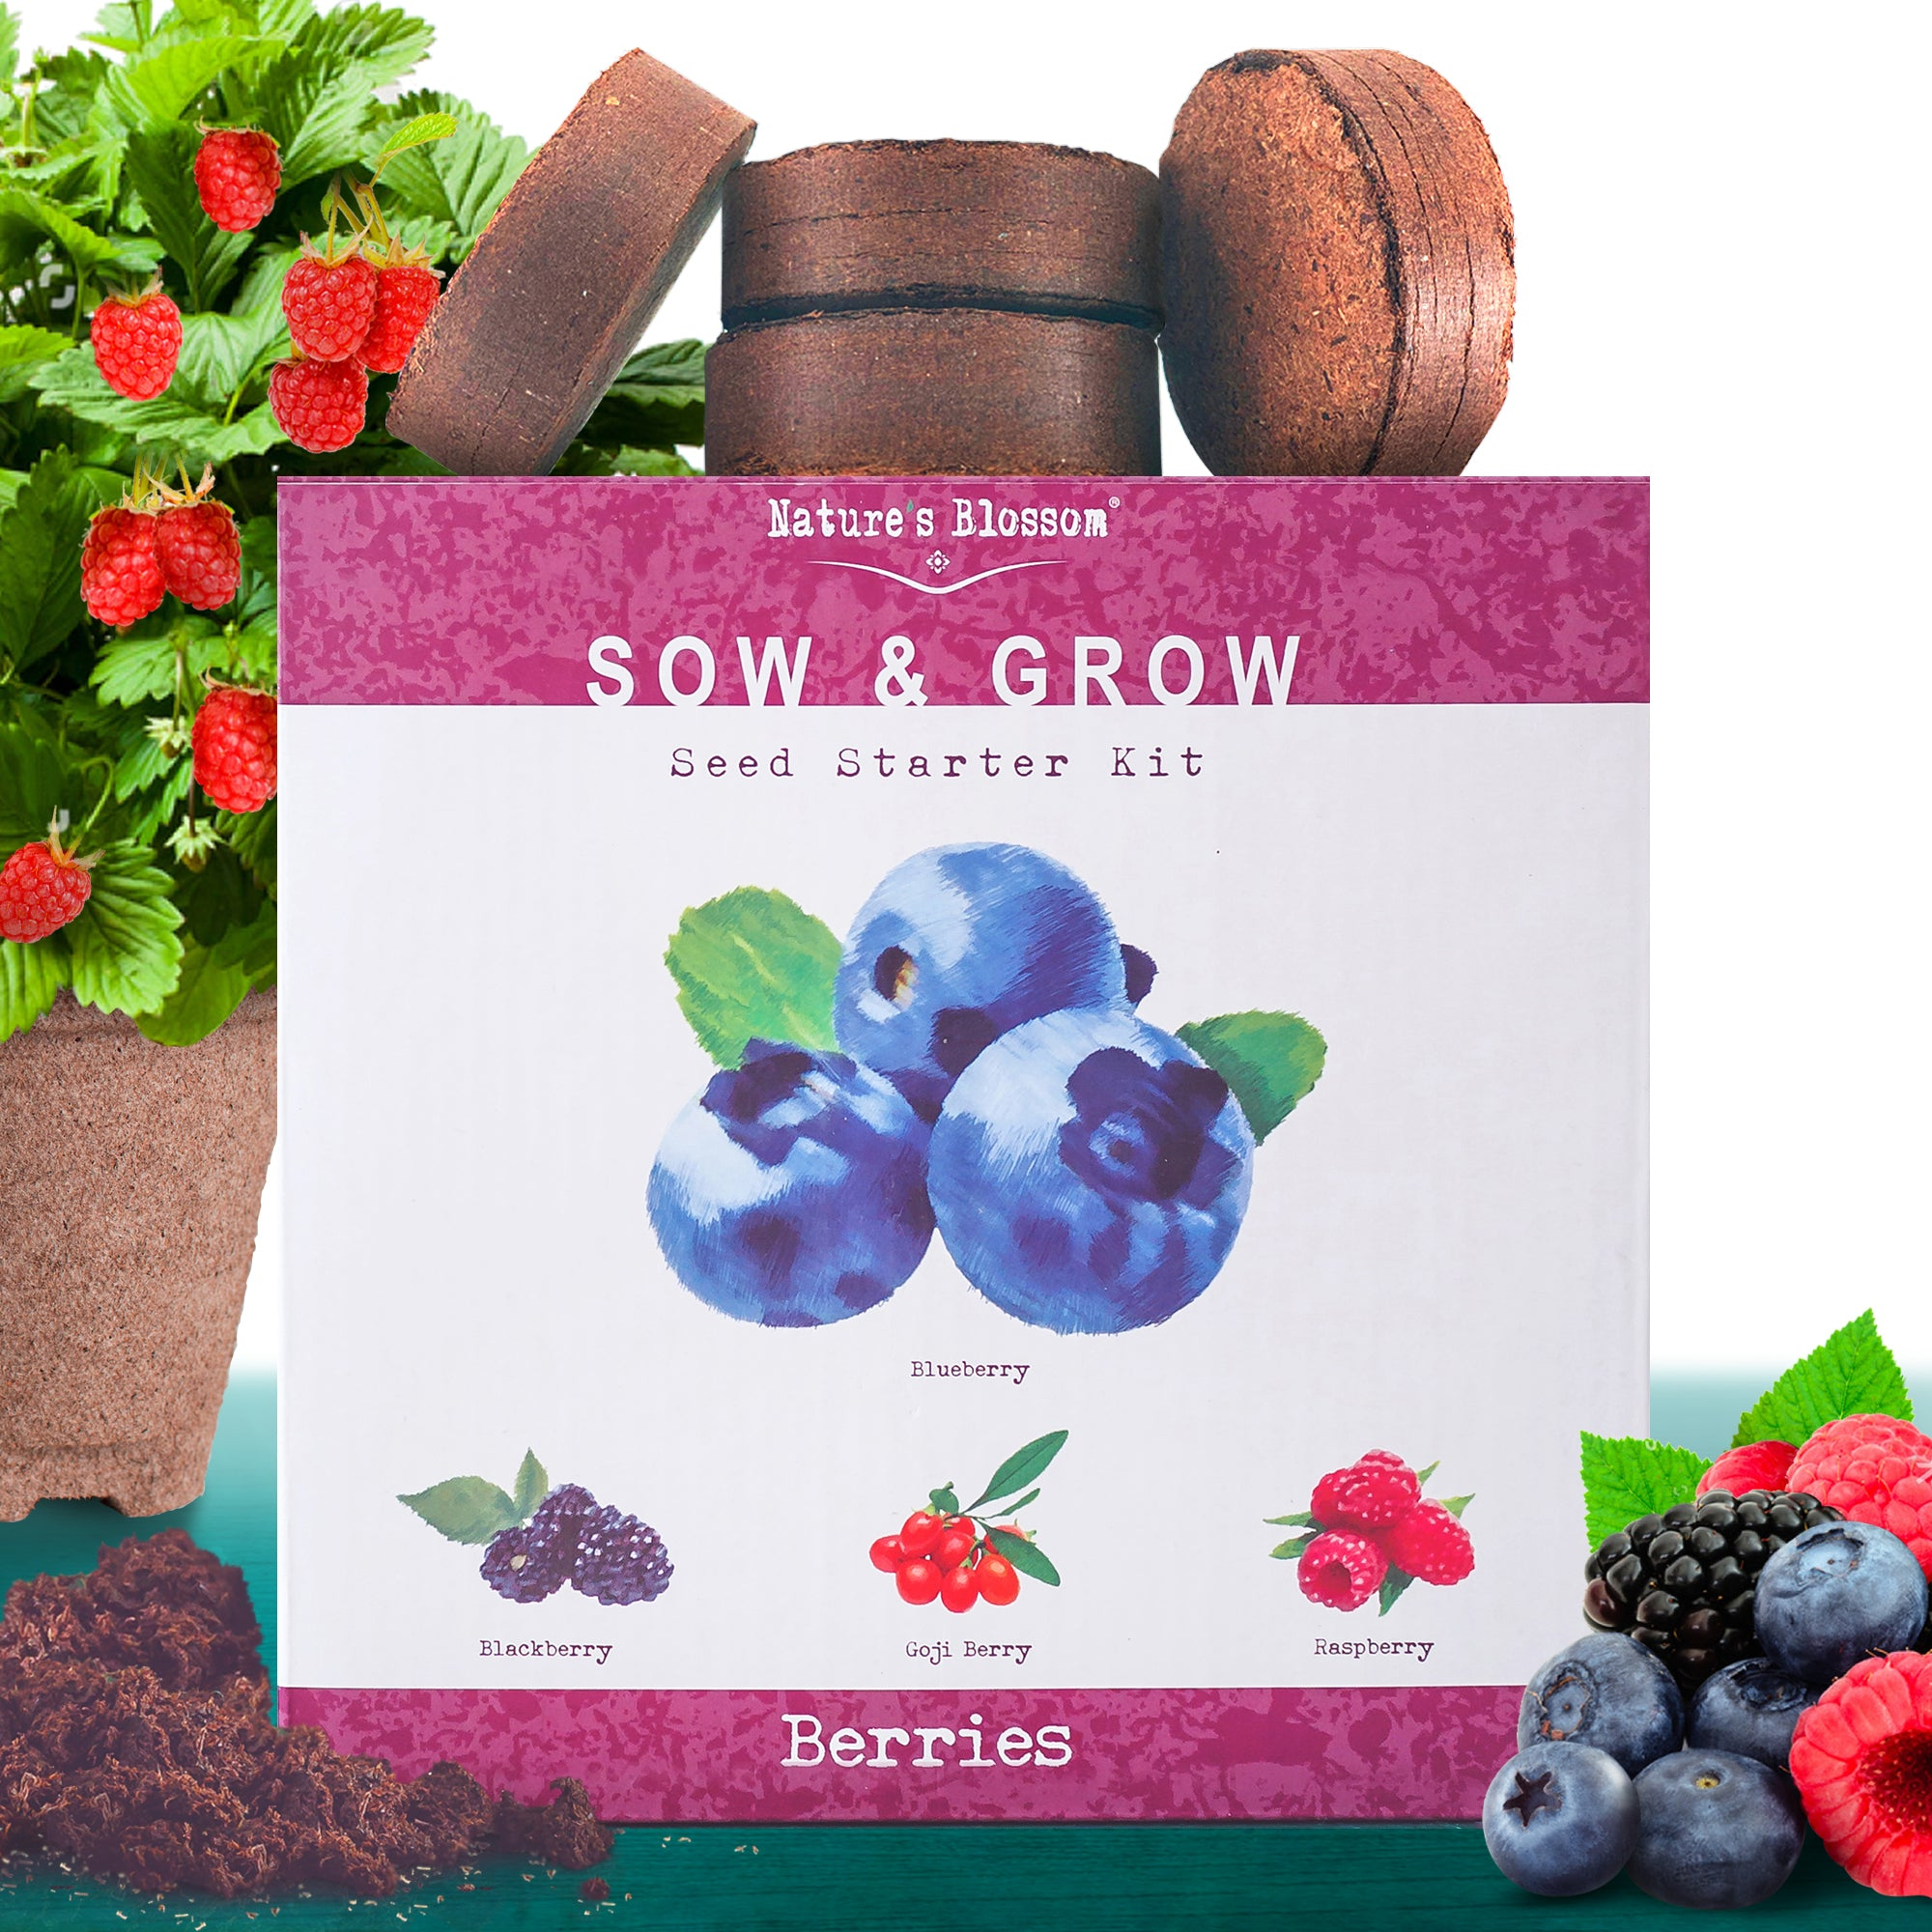 Fruit Growing Kit - 4 Types of Berries to Grow From Seed